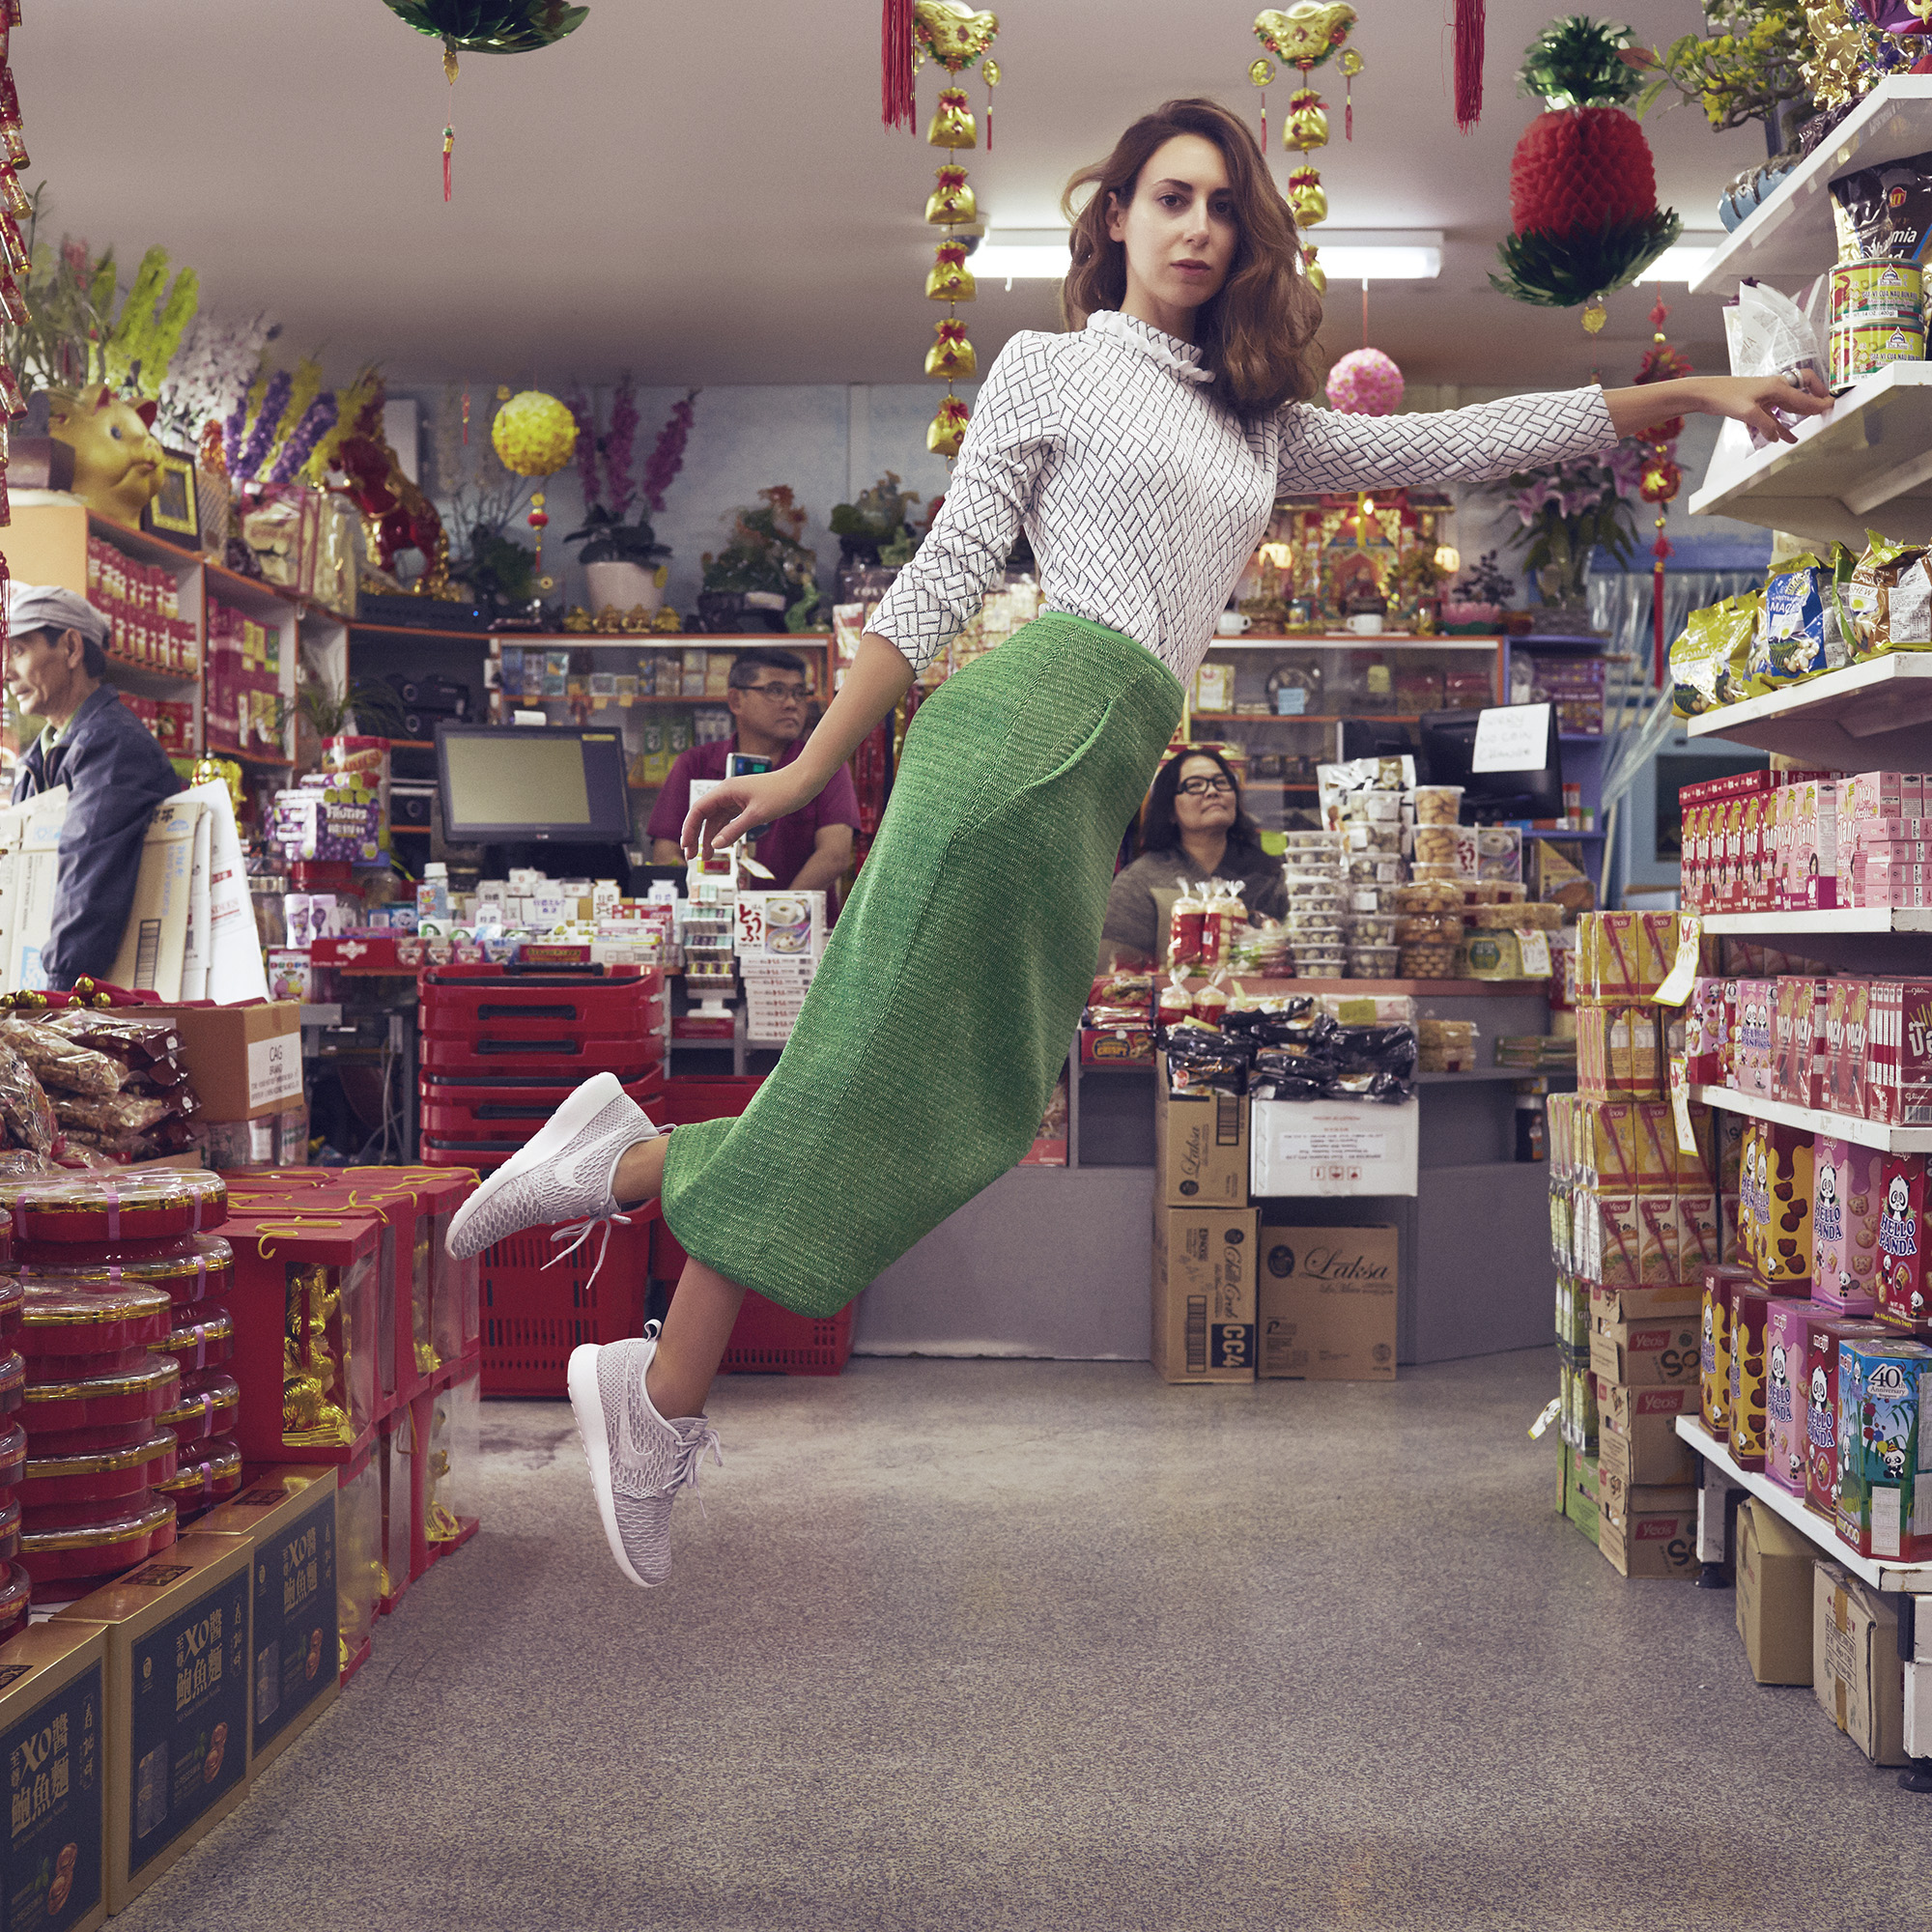 nike-thom-rigney-professional-photographer-levitation-campaign-advertising-australia-sneakers-007